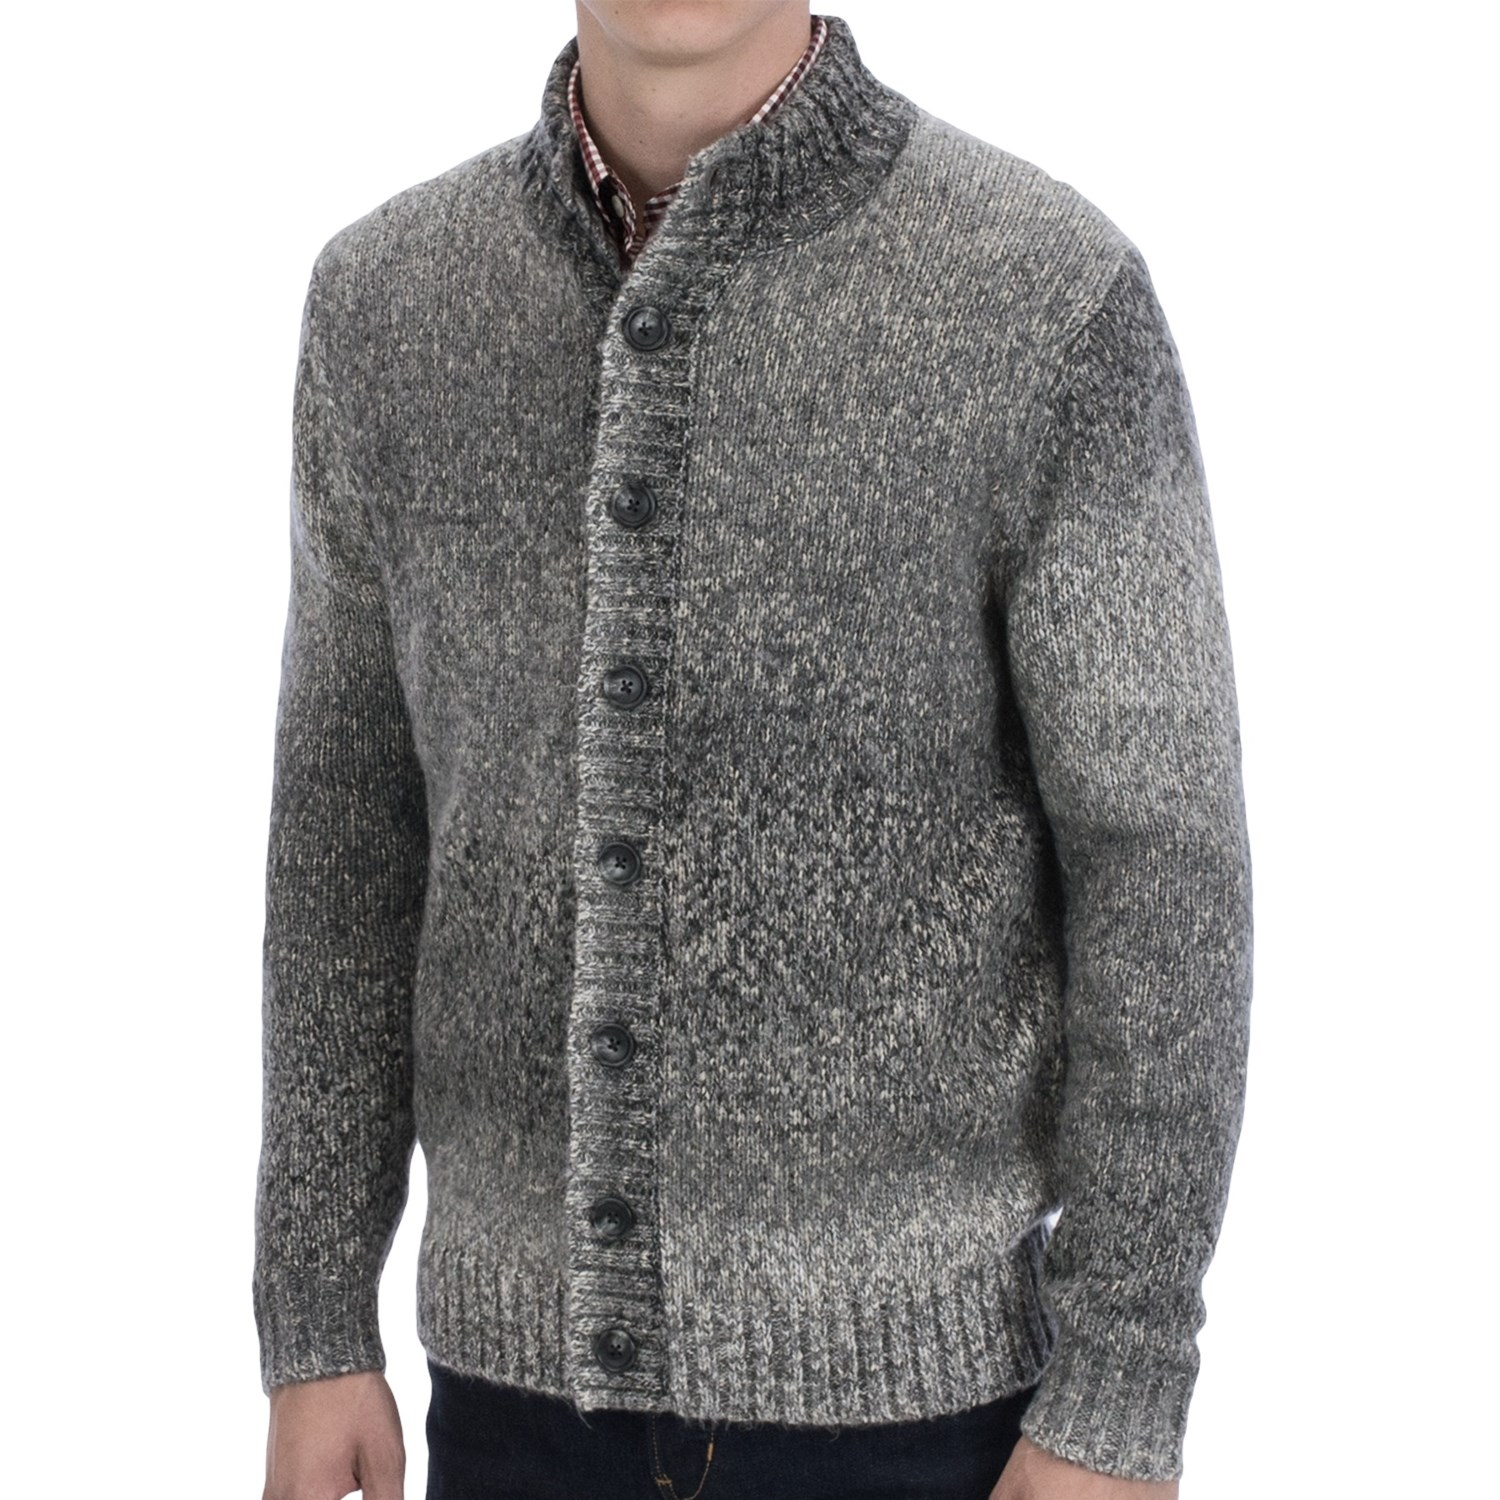 Men Cardigan Sweater 64